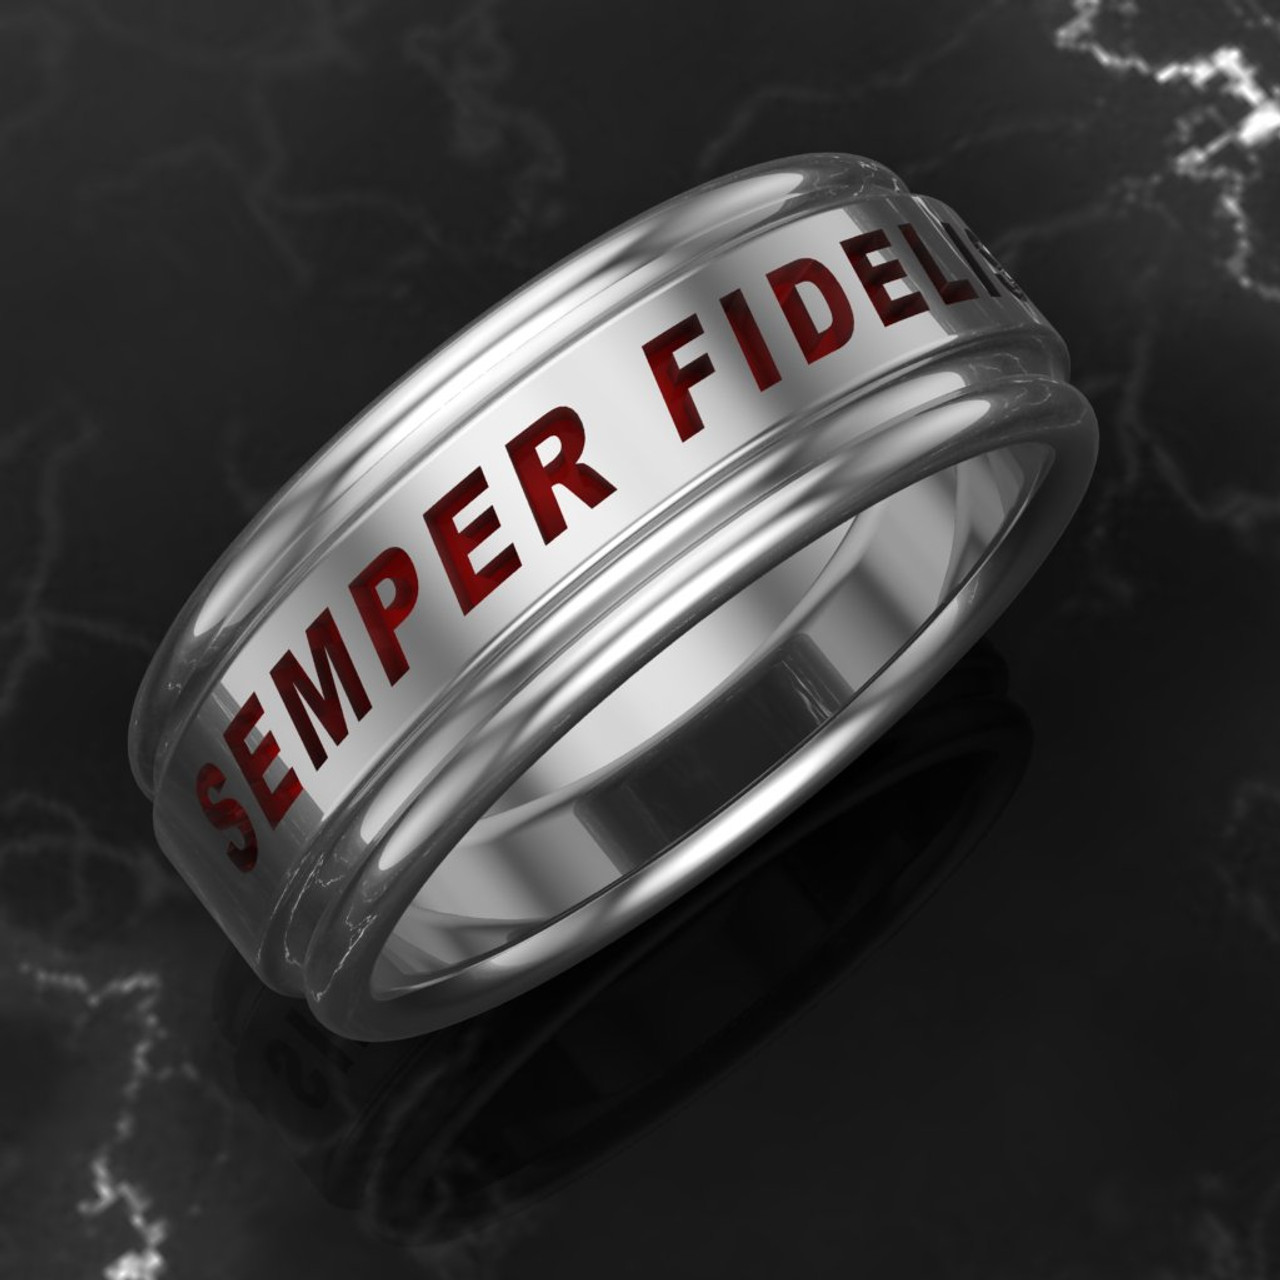 """USMC Woman Marines Semper Fidelis Band The stunning Semper Fidelis   The band is comfort fit and 7.5 mm wide. Your choice of black or red background.   """"Made by Marines for Marines""""    Available in Sterling Silver, 10k, 14k and 18k White or Yellow gold.   100% Satisfaction Guaranteed"""